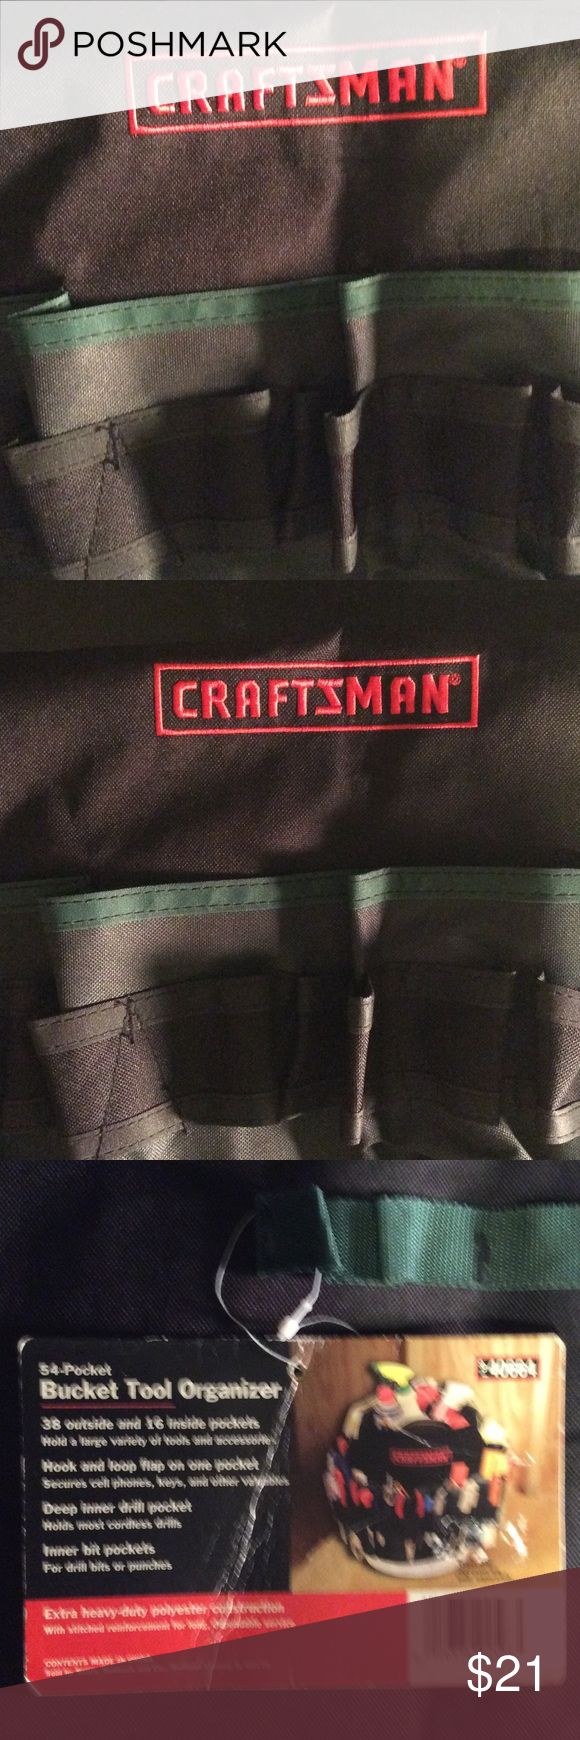 Sears Craftsman 54 Pocket Bucket Tool Organizer Sears Craftsman 54 Pocket Bucket Tool Organizer, 38 inside and 16 inside pockets. Other